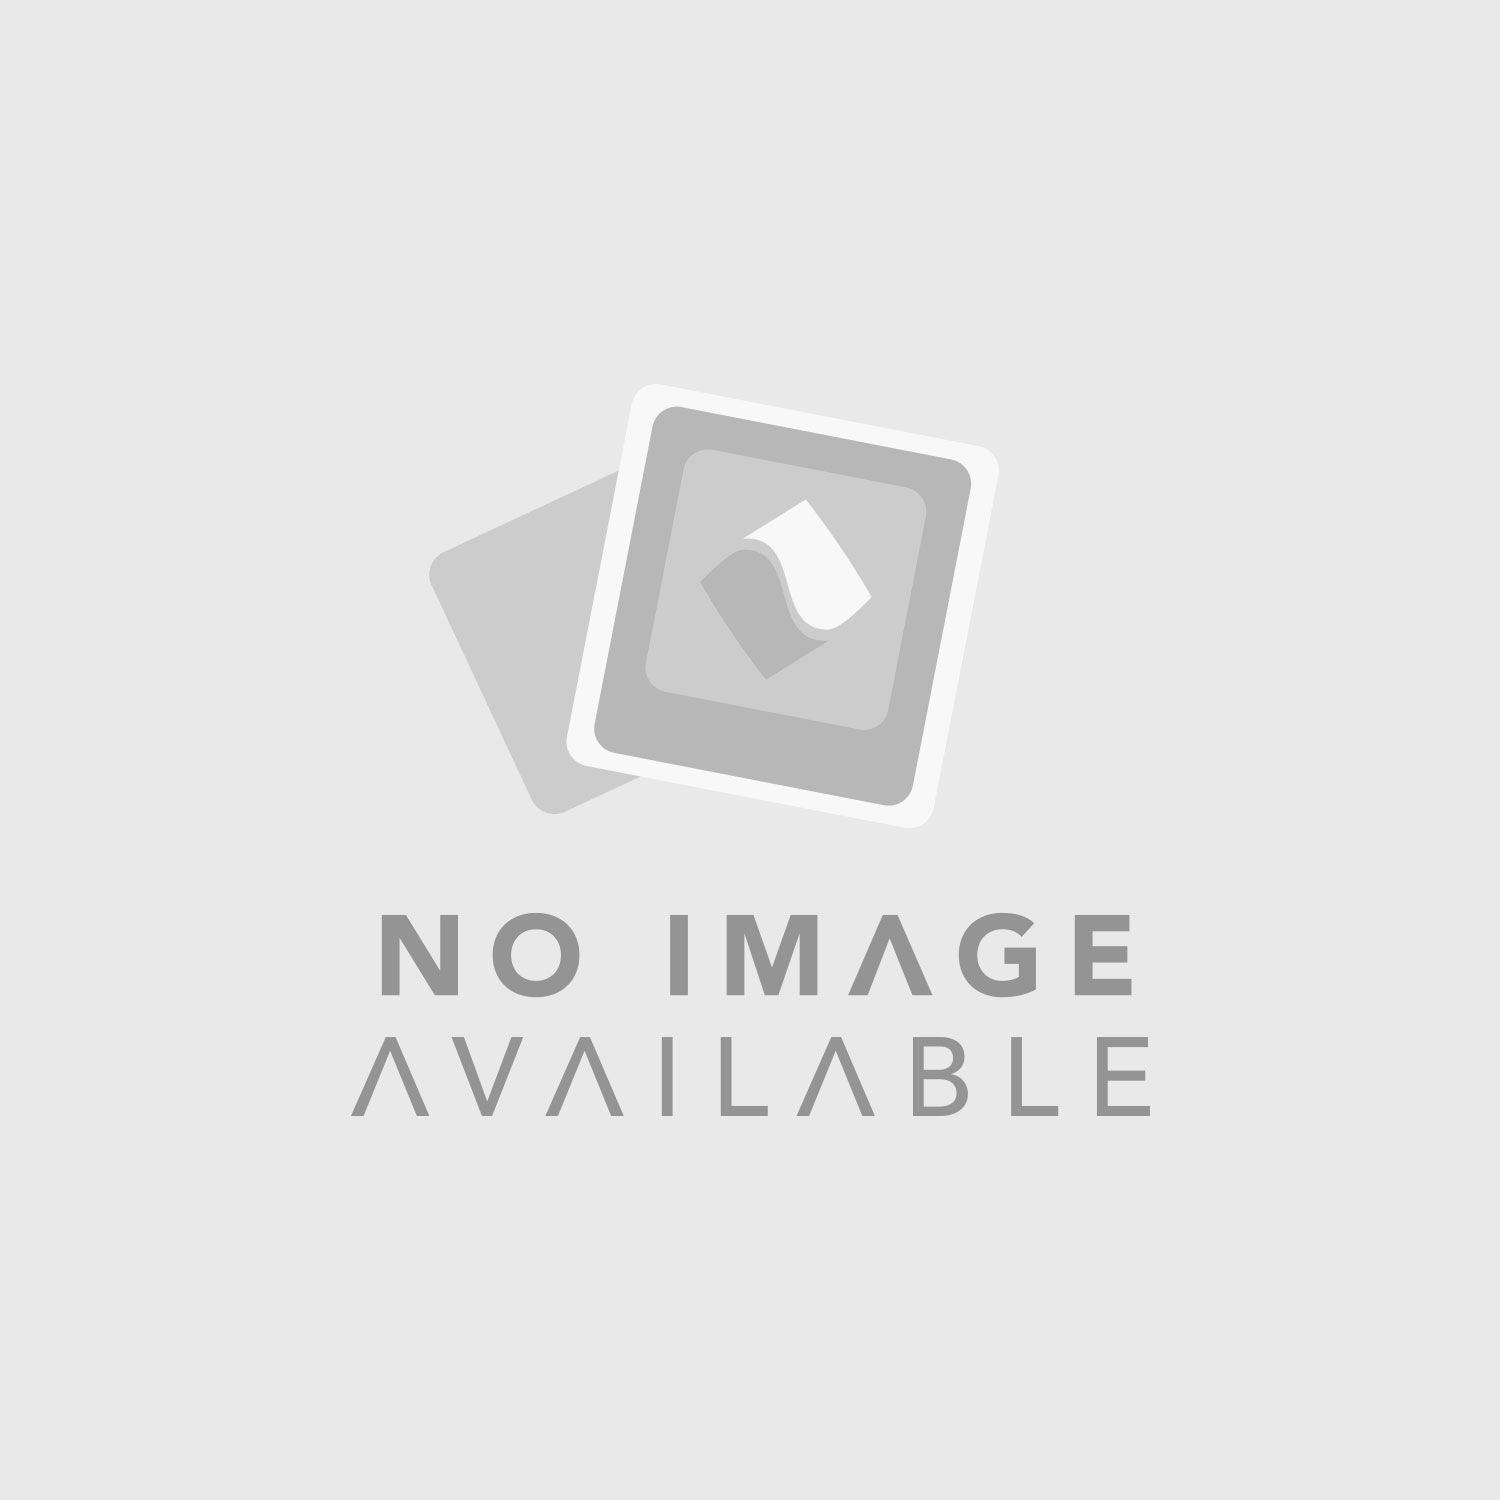 Rosco #80 Roscolux Filter Gel Primary Blue (48